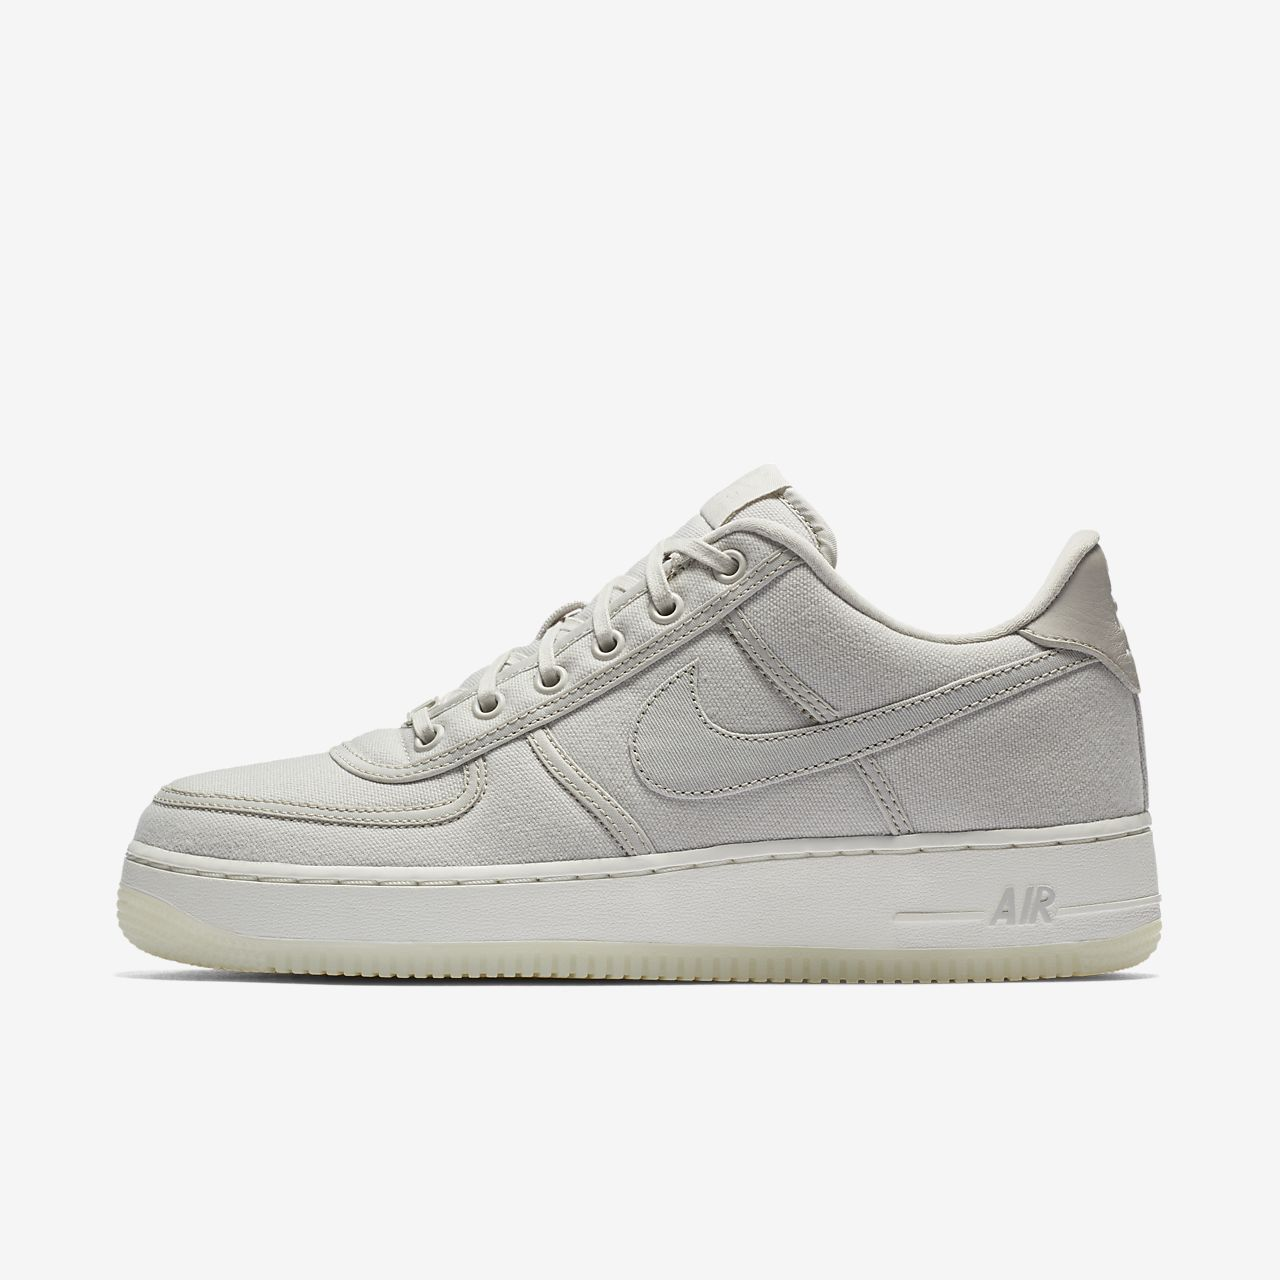 6af202c7c1791 Nike Air Force 1 Low Retro QS Men s Shoe. Nike.com